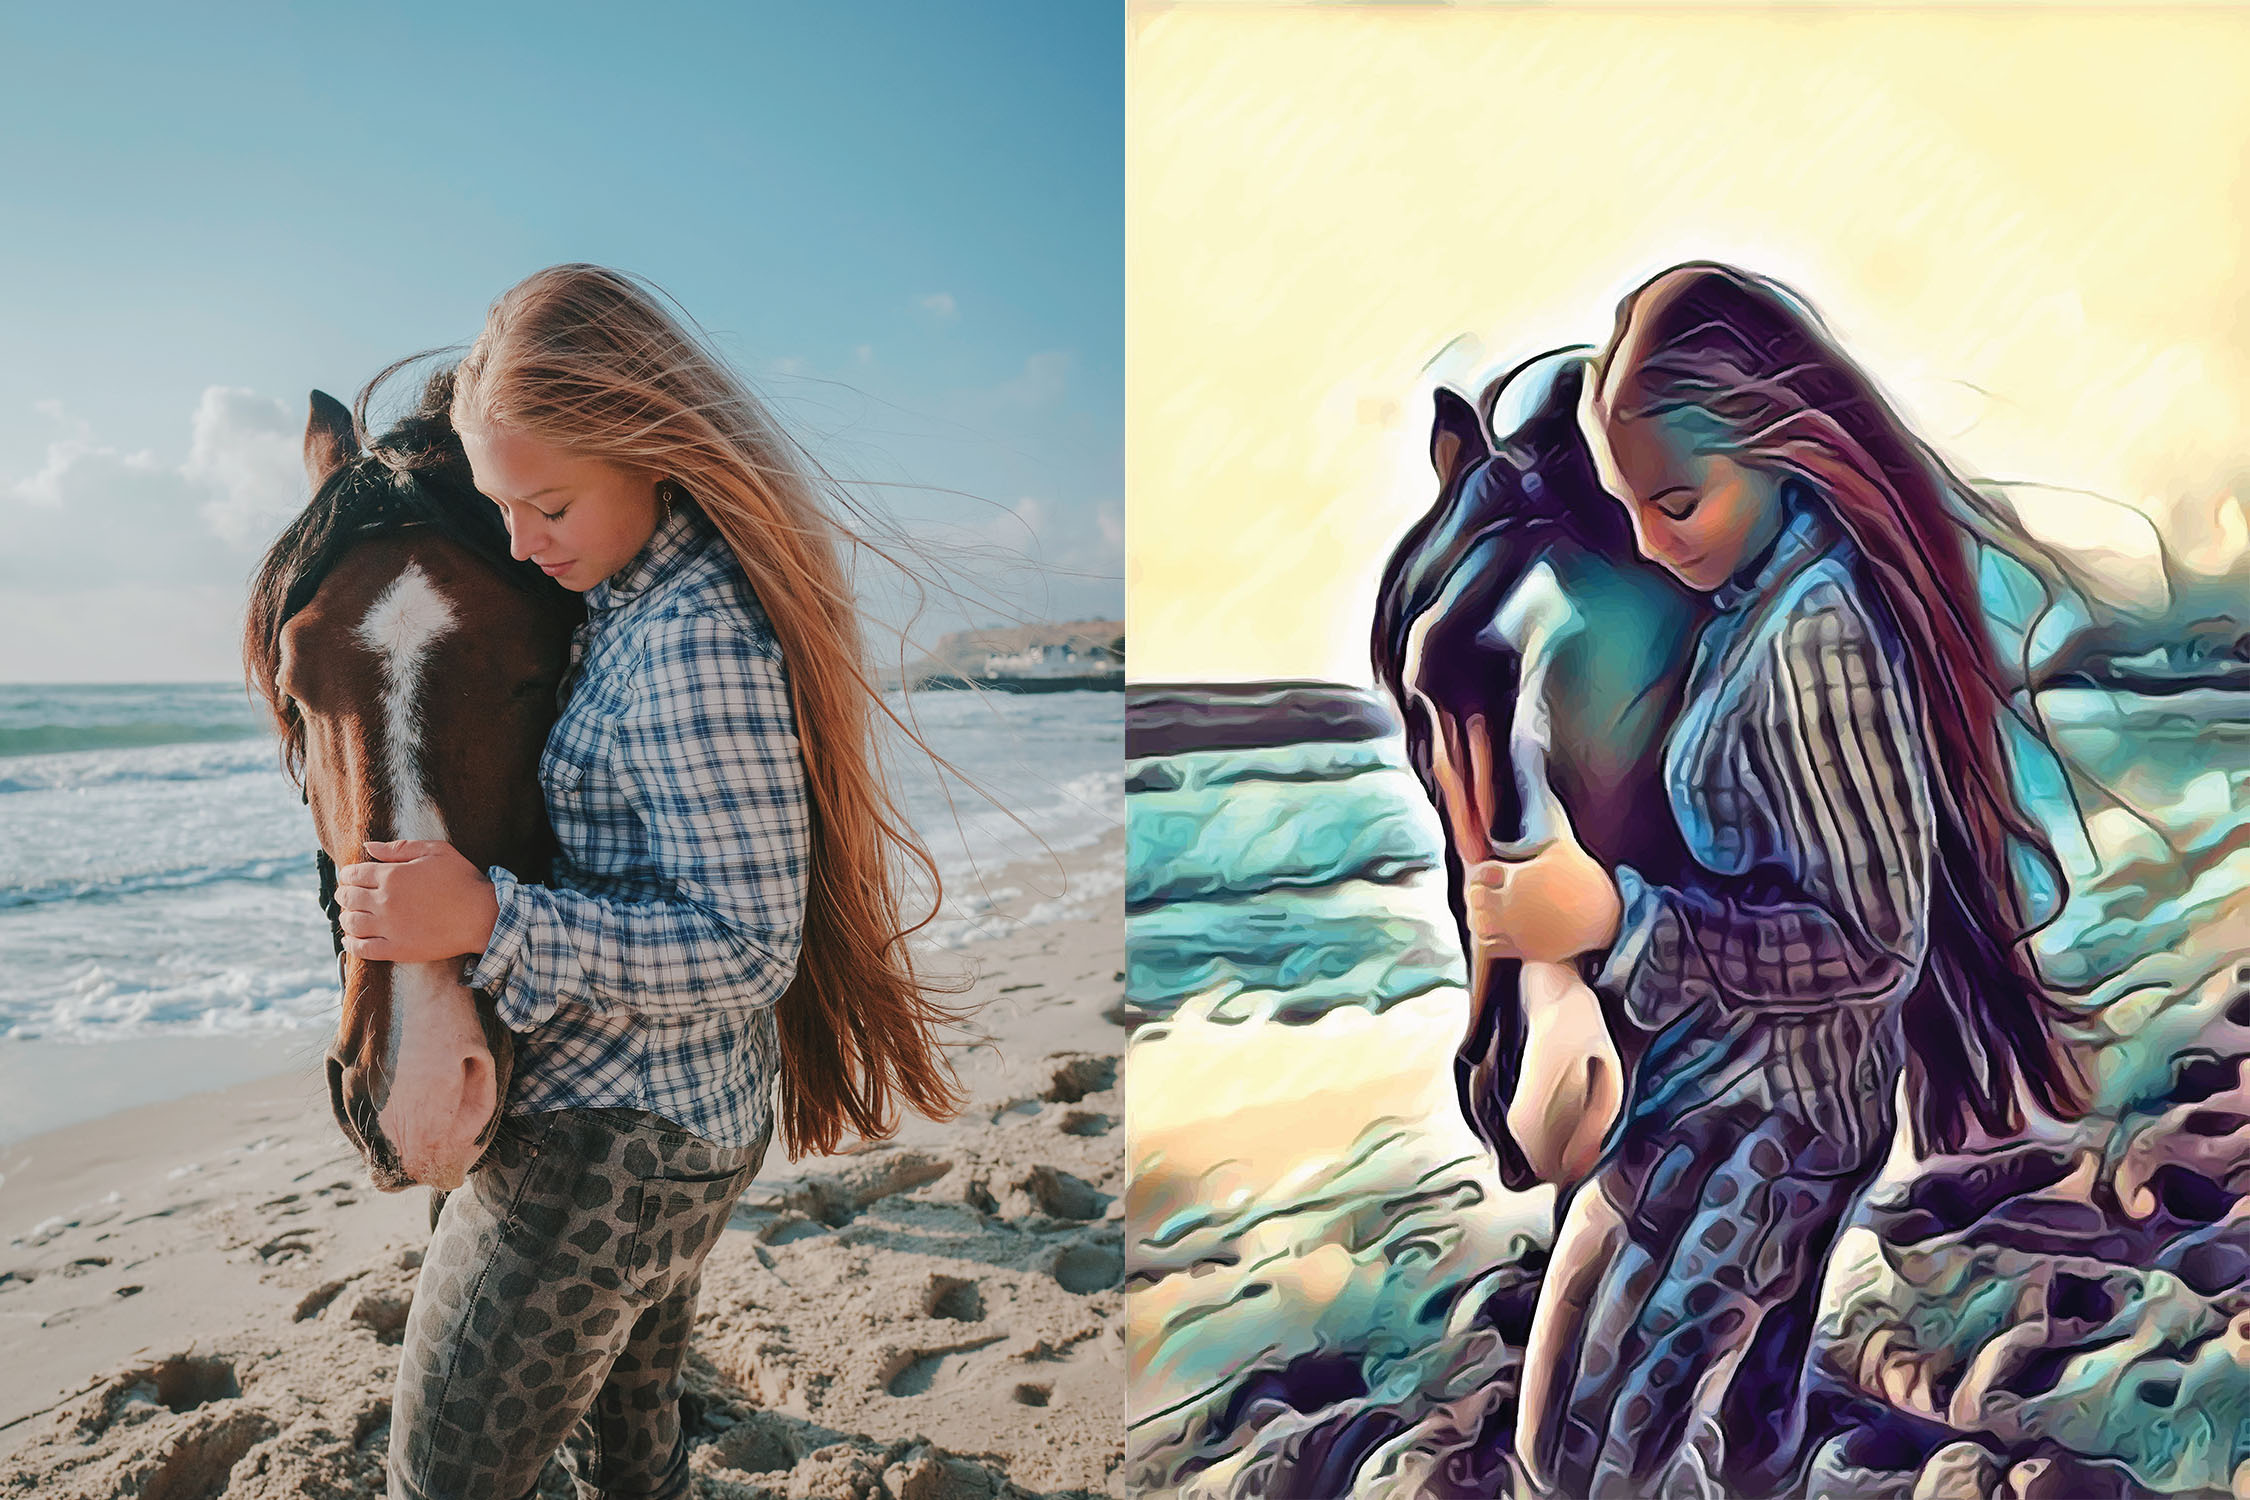 Before and after stylized Image of a woman on a beach hugging a horse's face